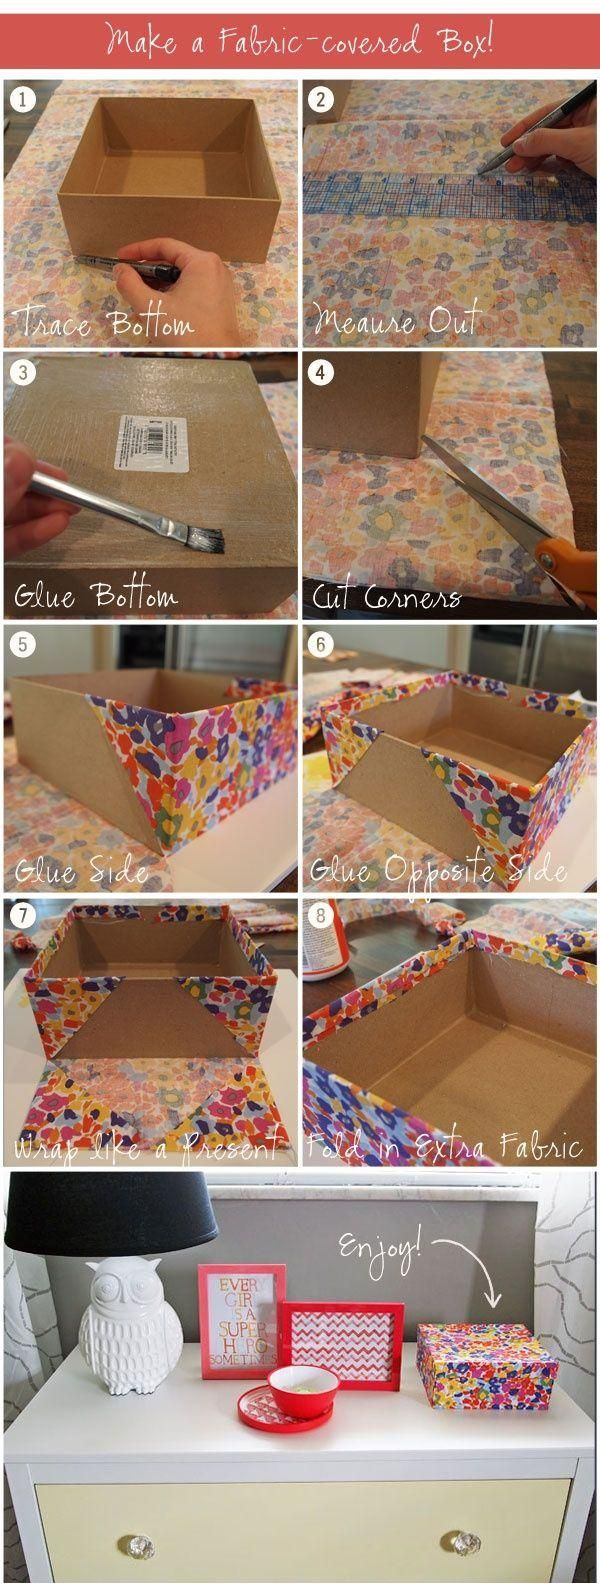 Quick tutorial on fabric covering a box.